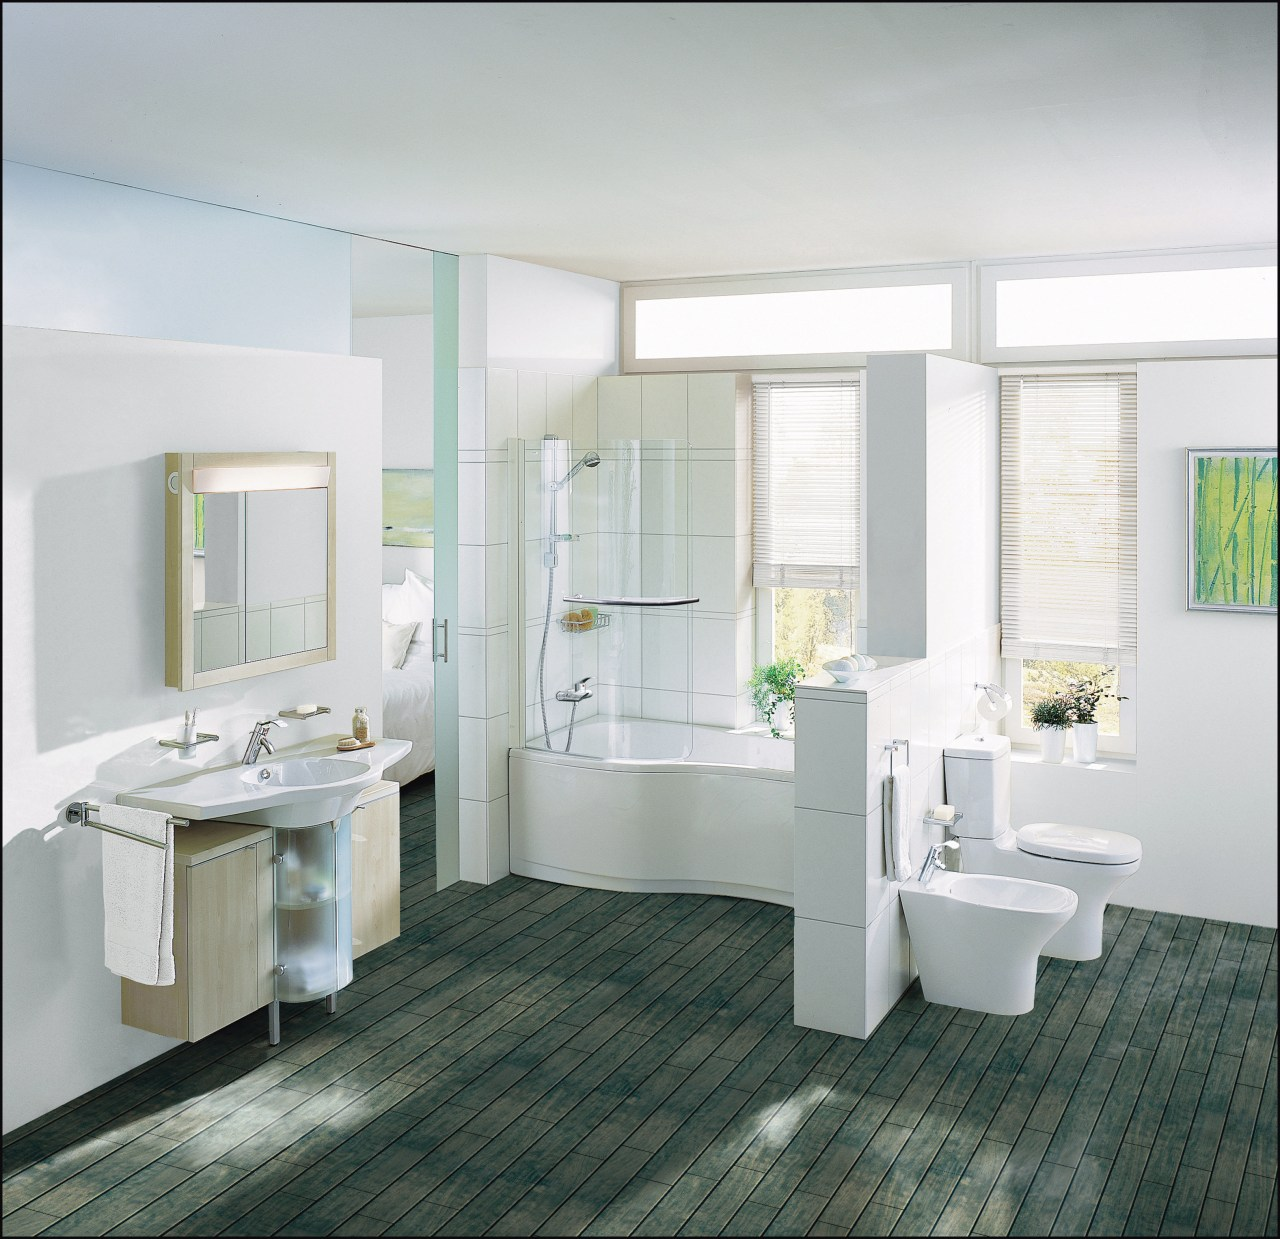 Examples of a freelance bathroom suite with a bathroom, bathroom accessory, bathroom cabinet, floor, flooring, interior design, plumbing fixture, room, sink, tile, gray, white